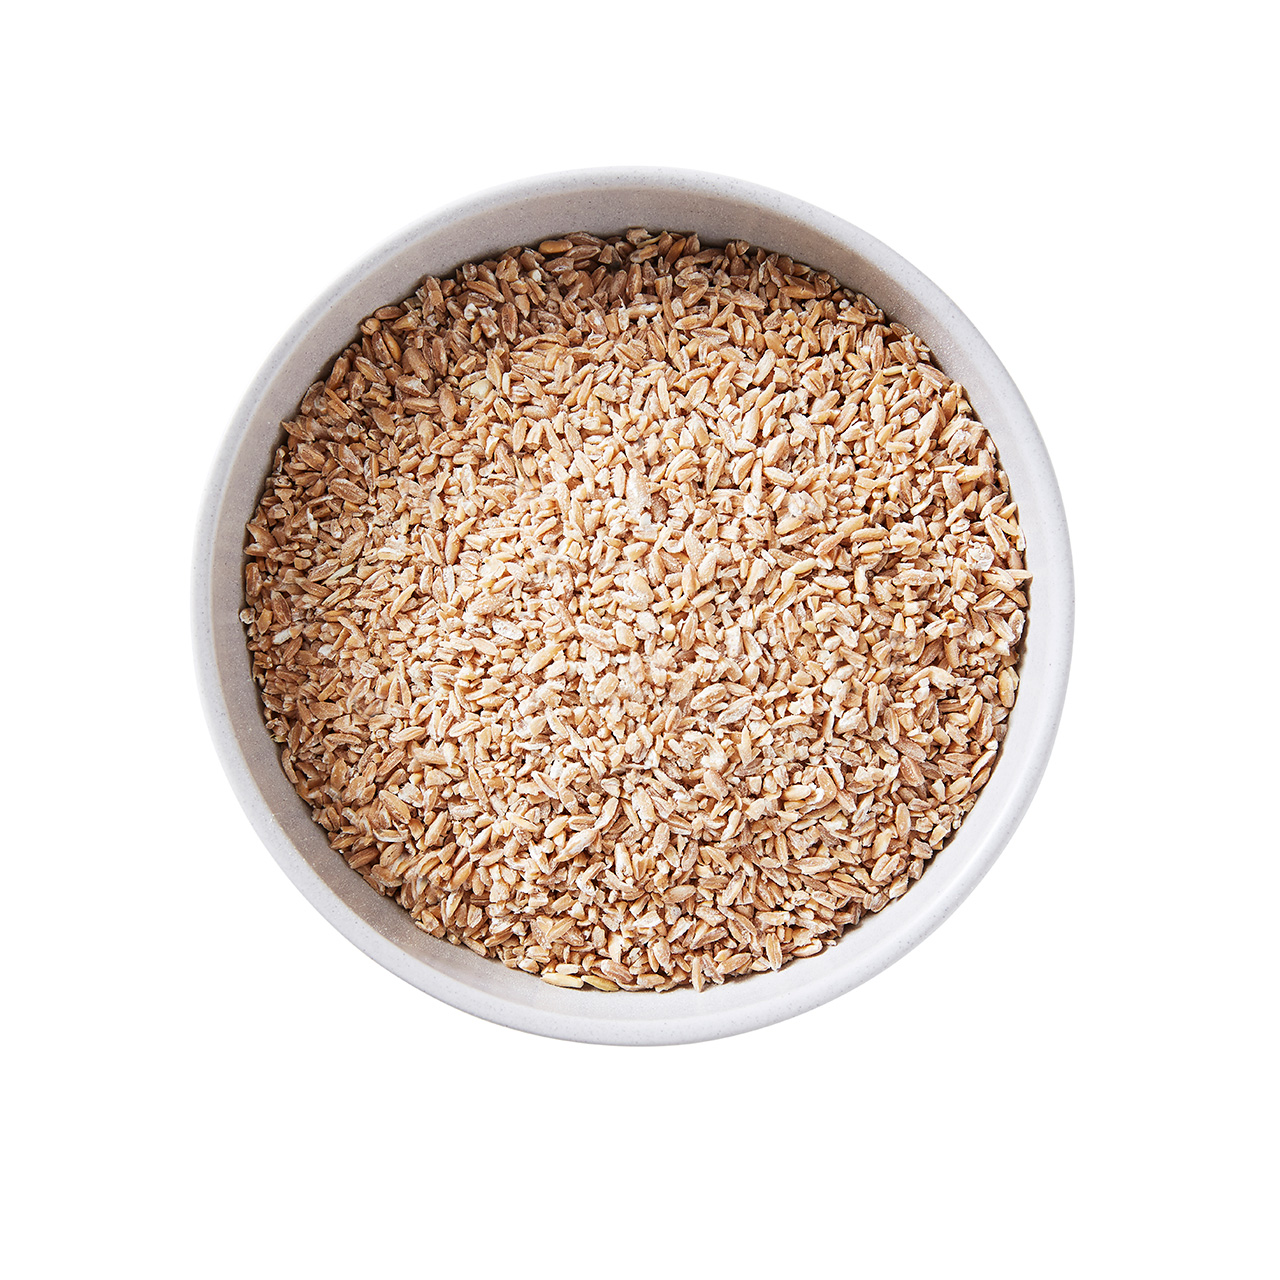 Bio-dynamic Cracked Farro 500g